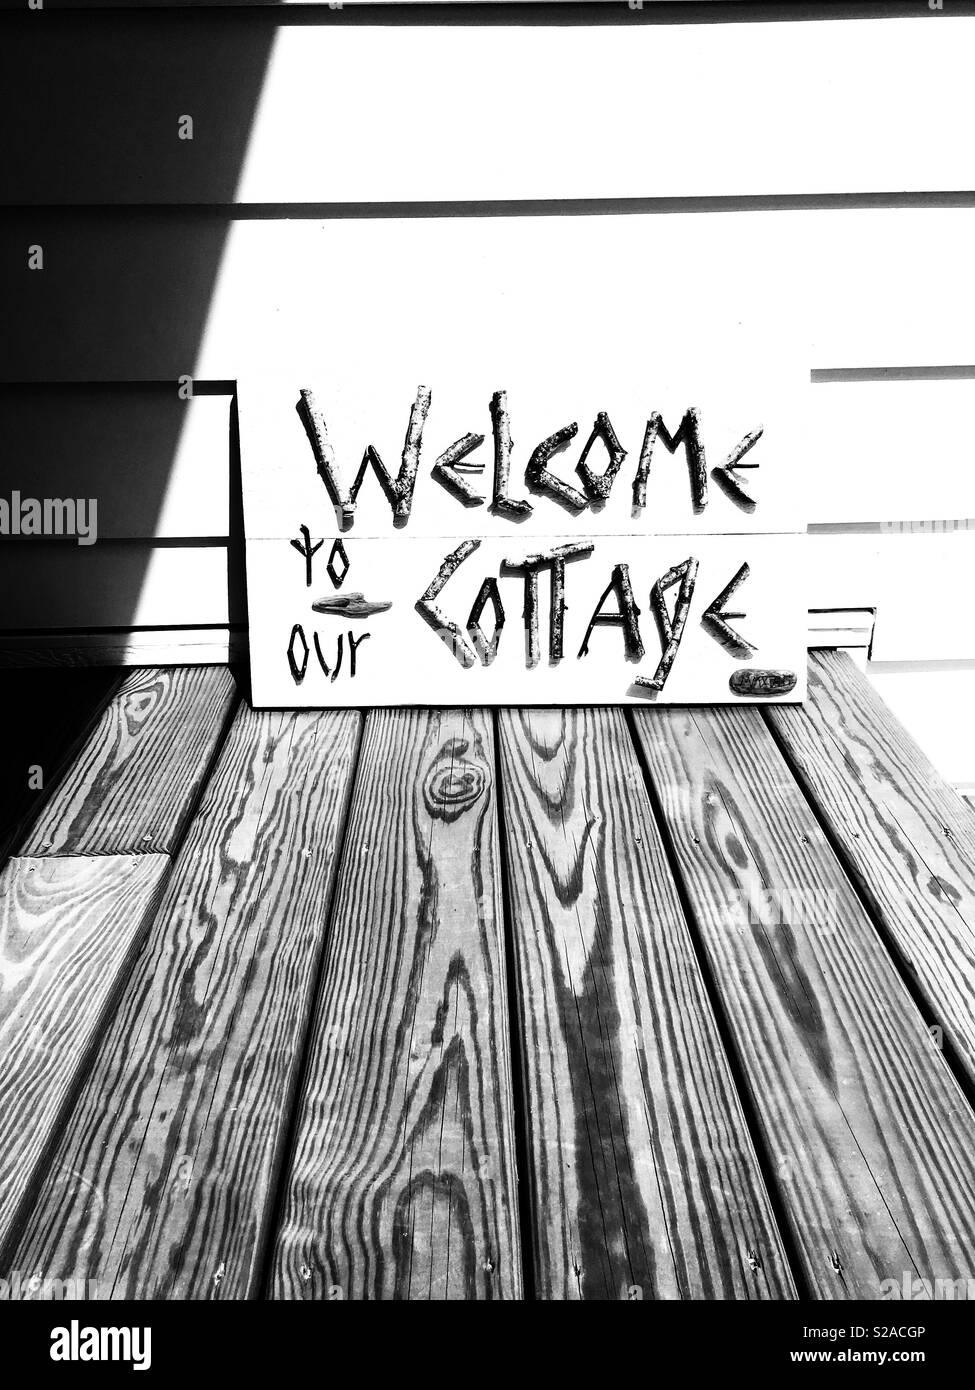 Welcome To Our Cottage sign - Stock Image